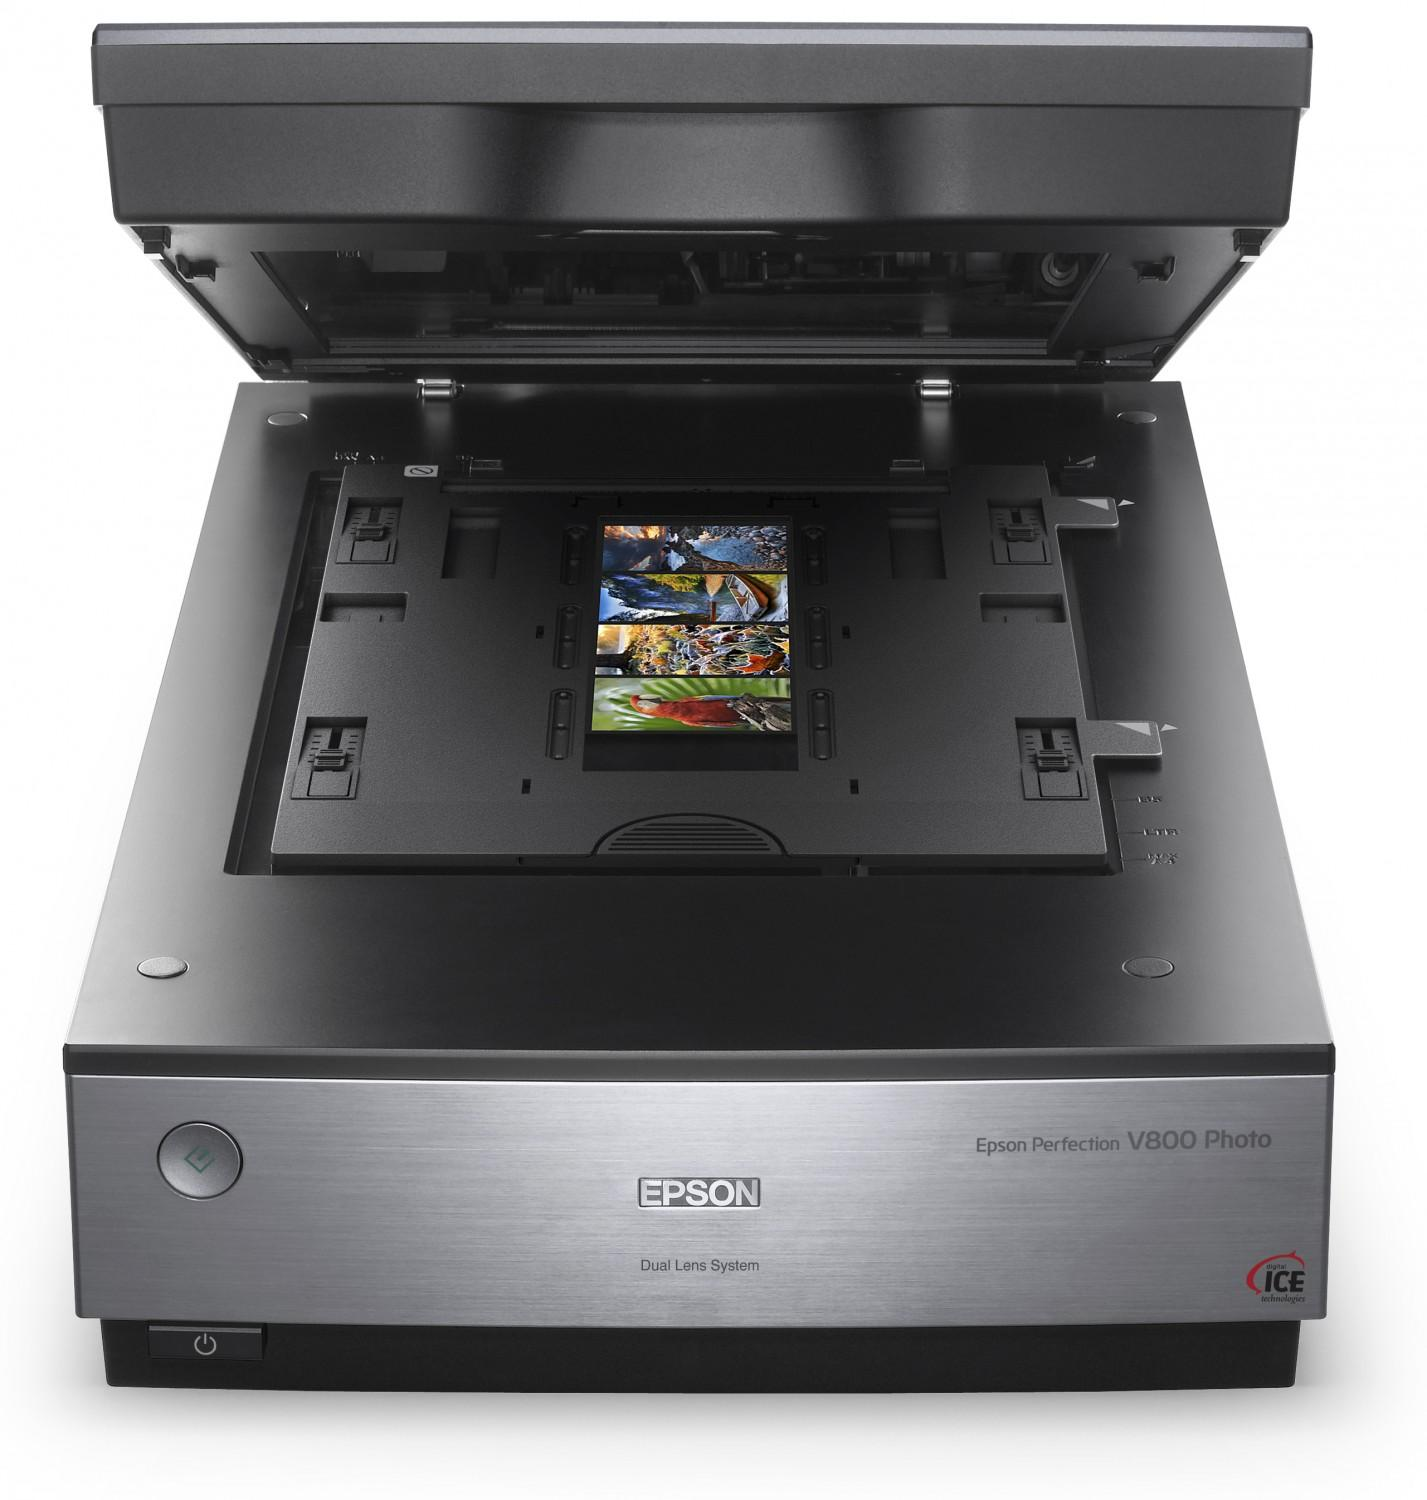 Epson Perfection V800 Photo B11B223401